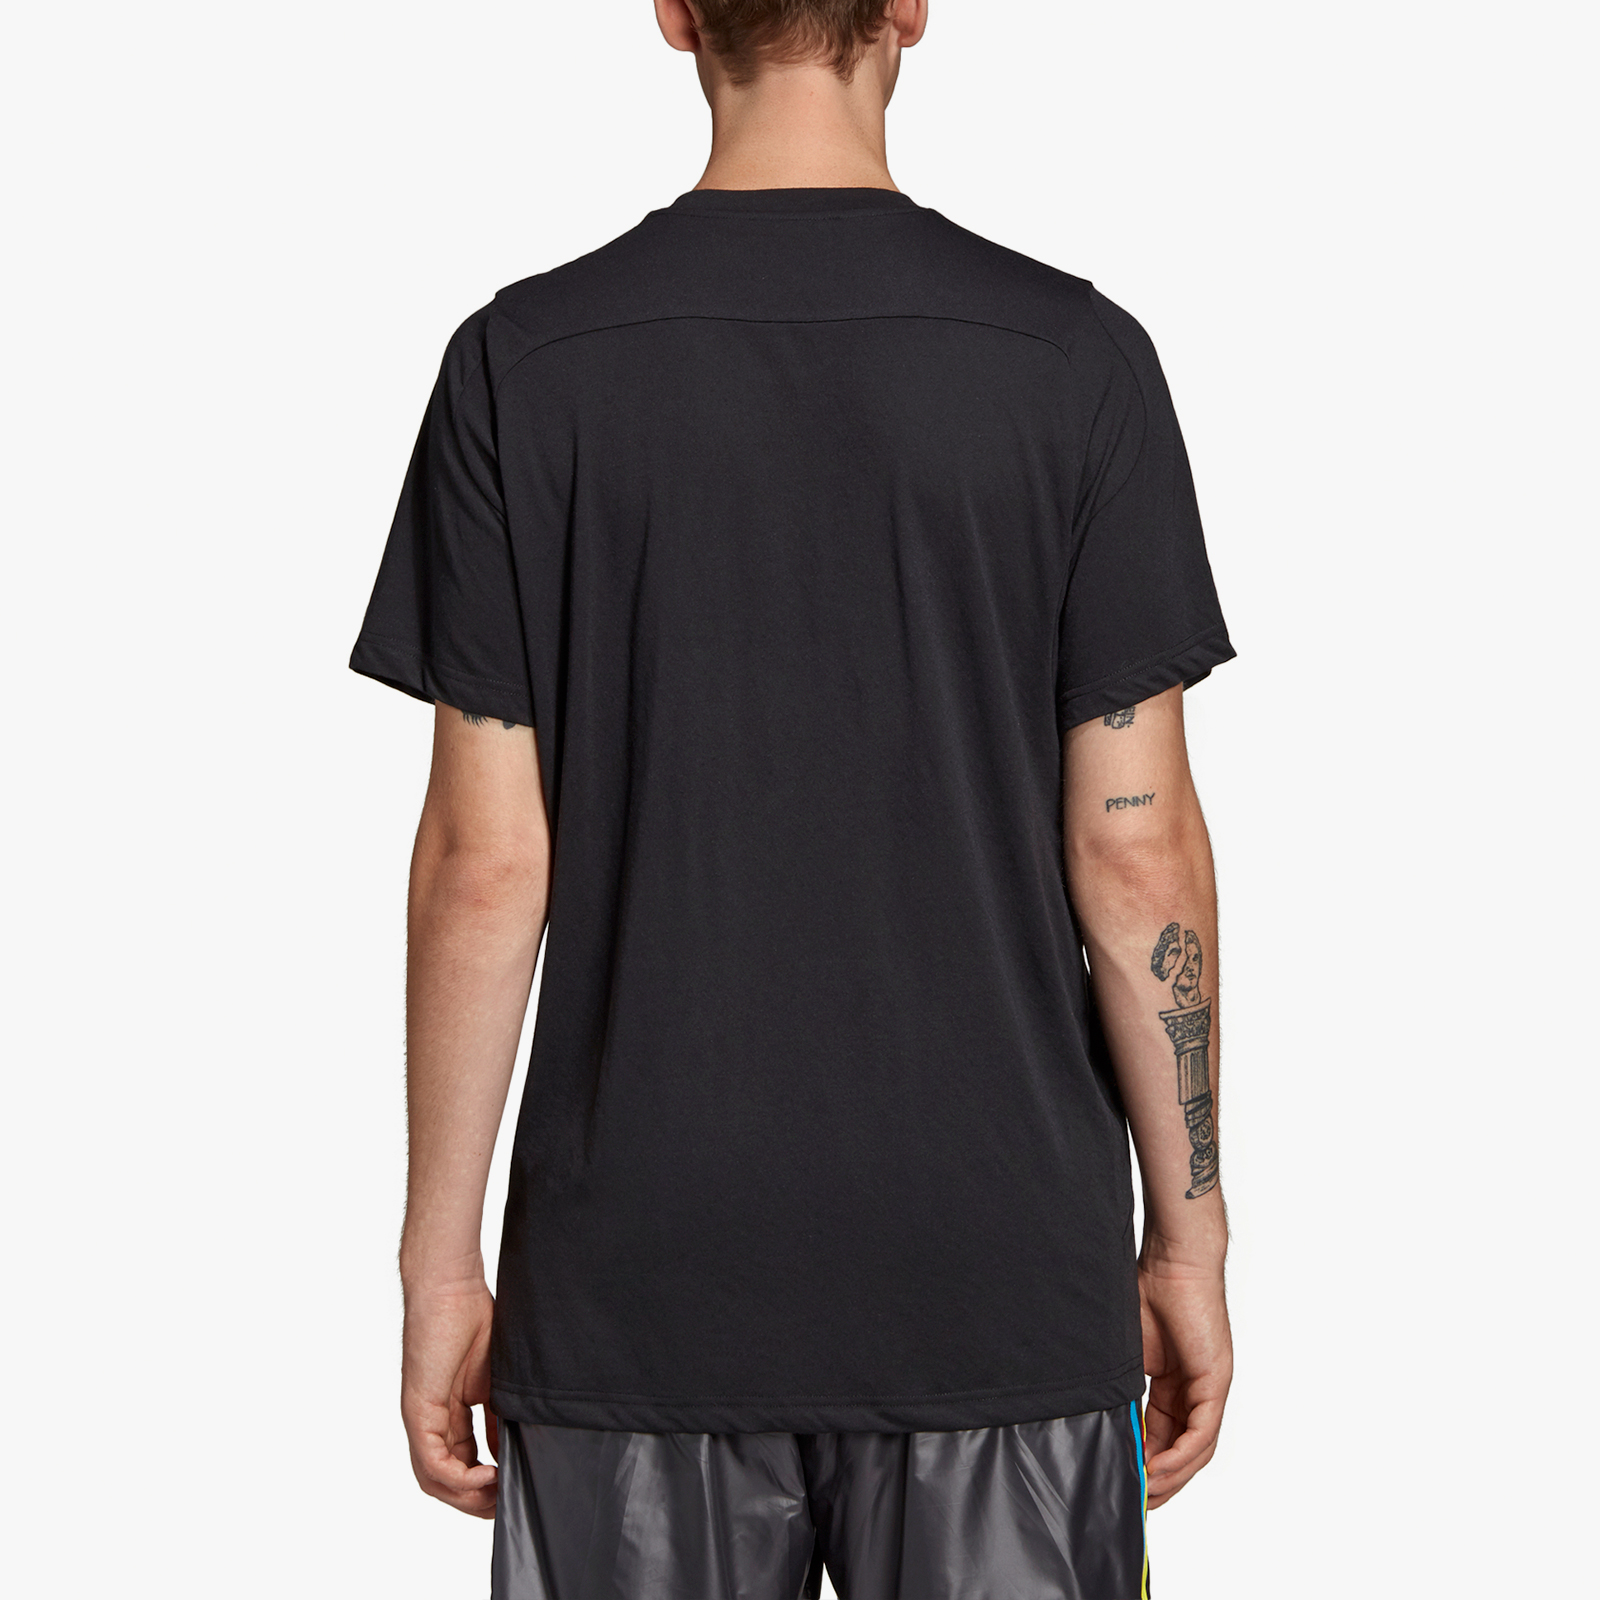 0c990ee1f50 adidas 48 Hour SS Tee x Oyster - Dt4811 - Sneakersnstuff